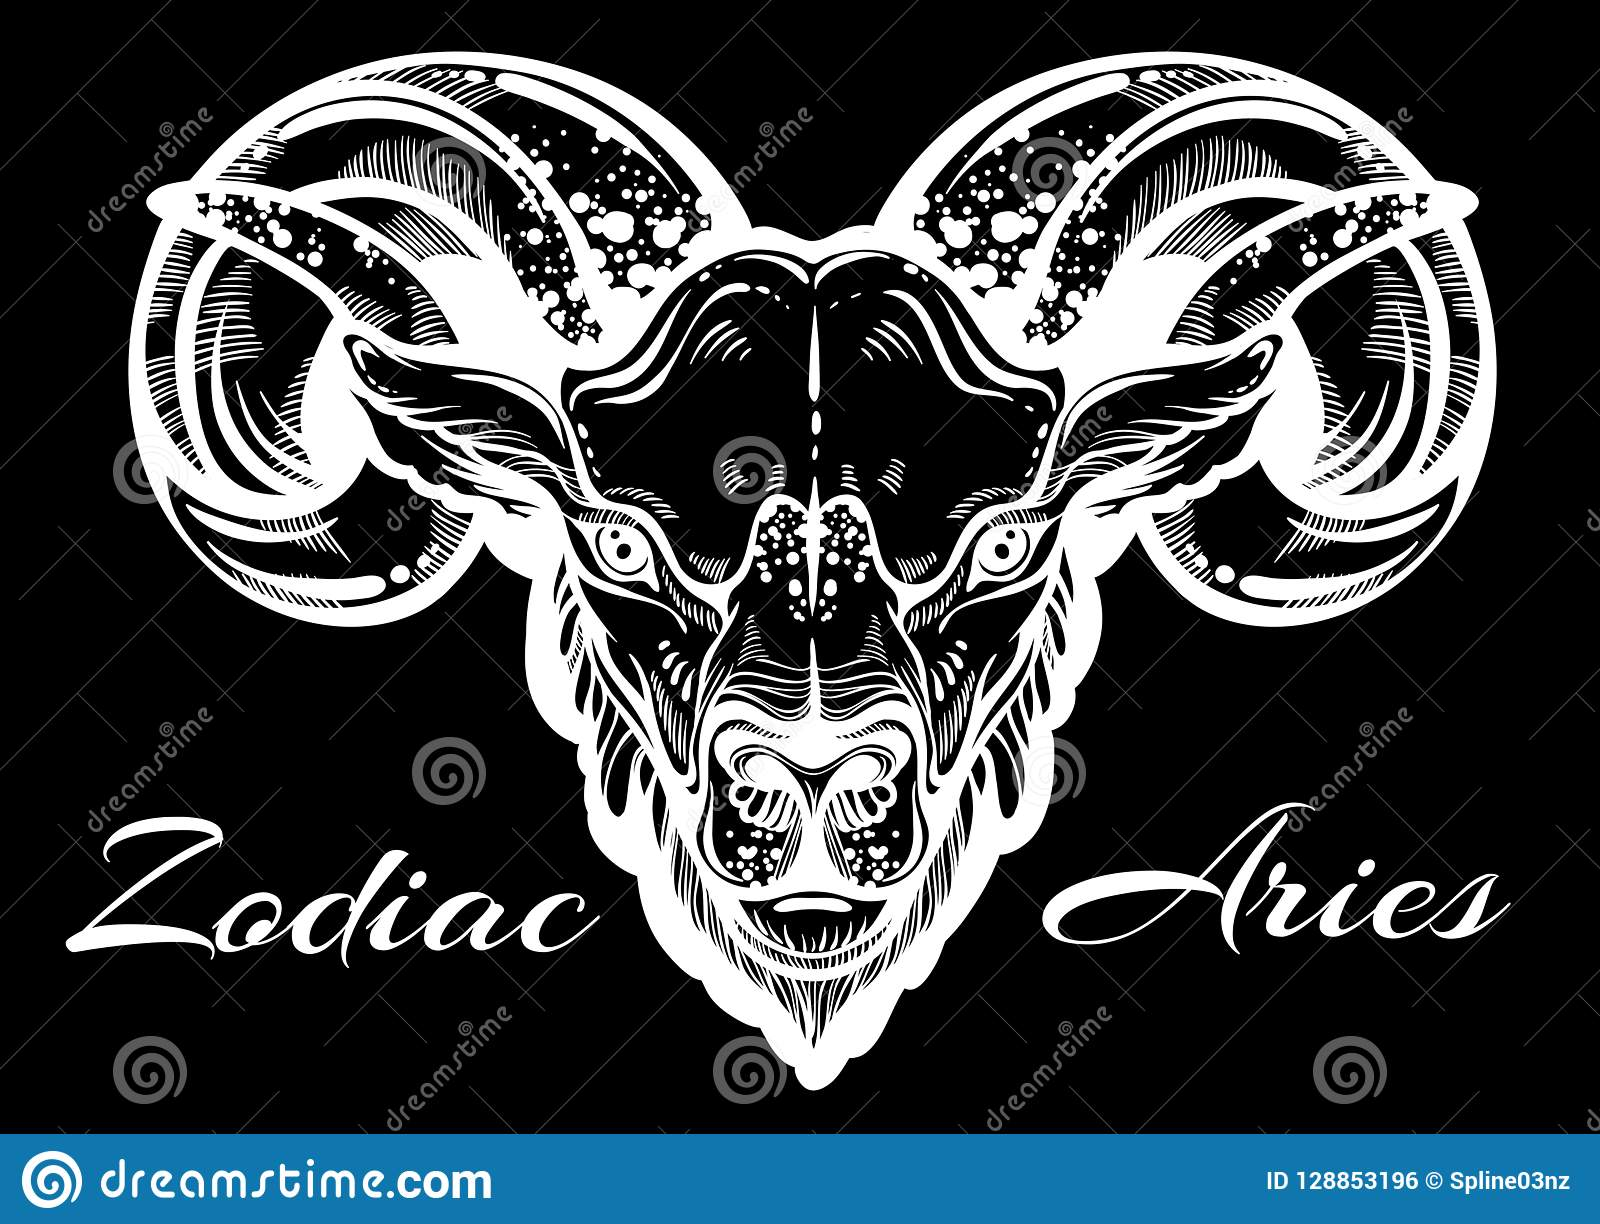 eaa7e325b9f07 Hand-drawn beautiful artwork of a ram. High-detailed linear style art. Aries,  zodiac sign. Trendy vector illustration isolated. Tattoo design, astrology  ...